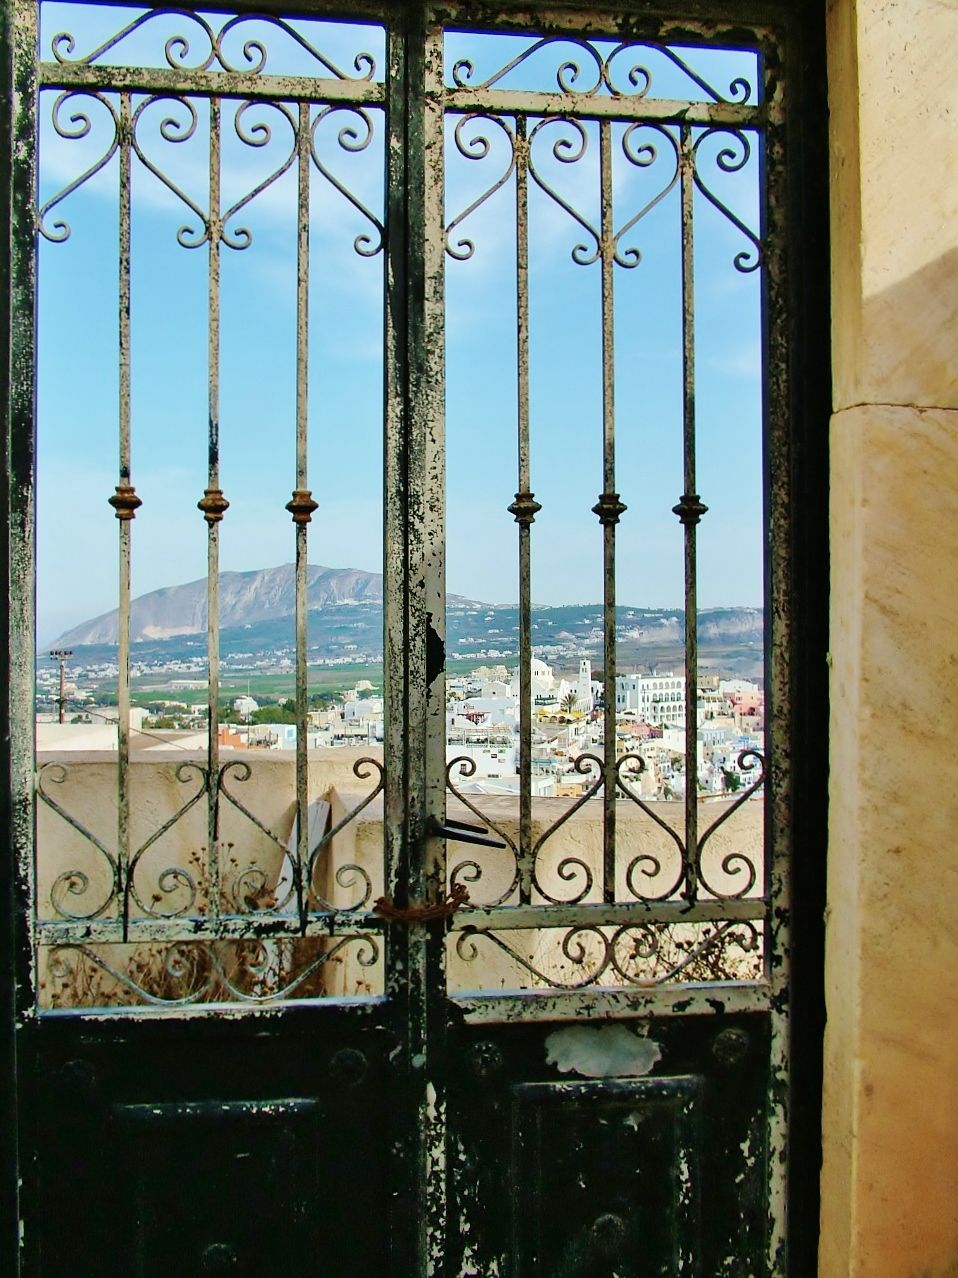 Beyond this weathered wrought iron door is a panoramic